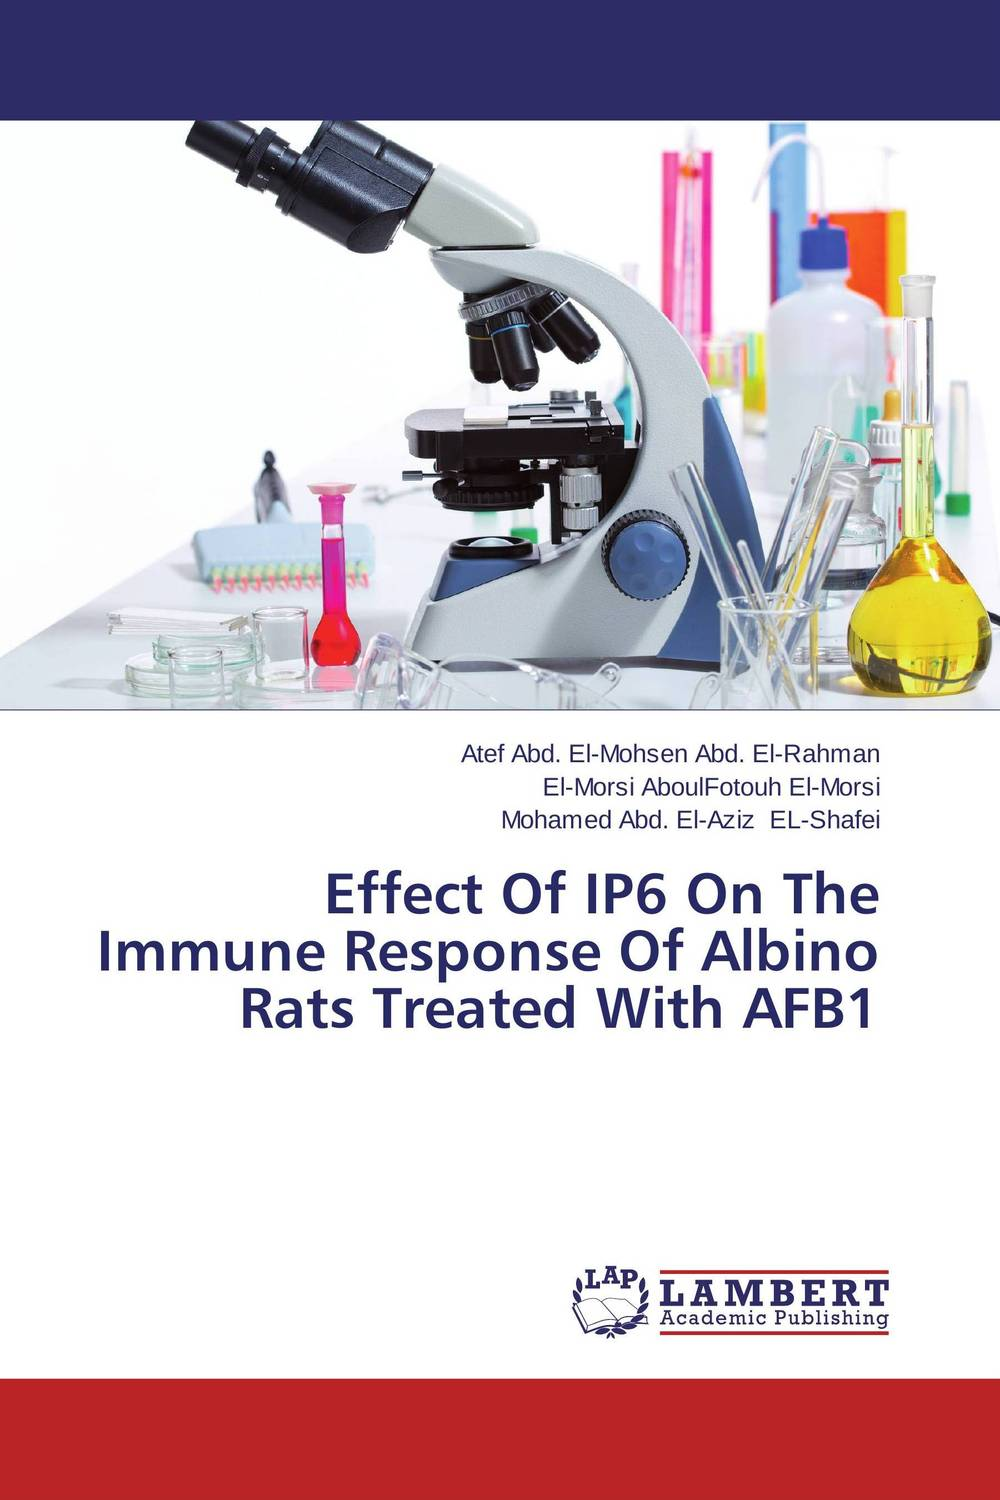 Effect Of IP6 On The Immune Response Of Albino Rats Treated With AFB1 sorento 1586 1p favourite 1116433